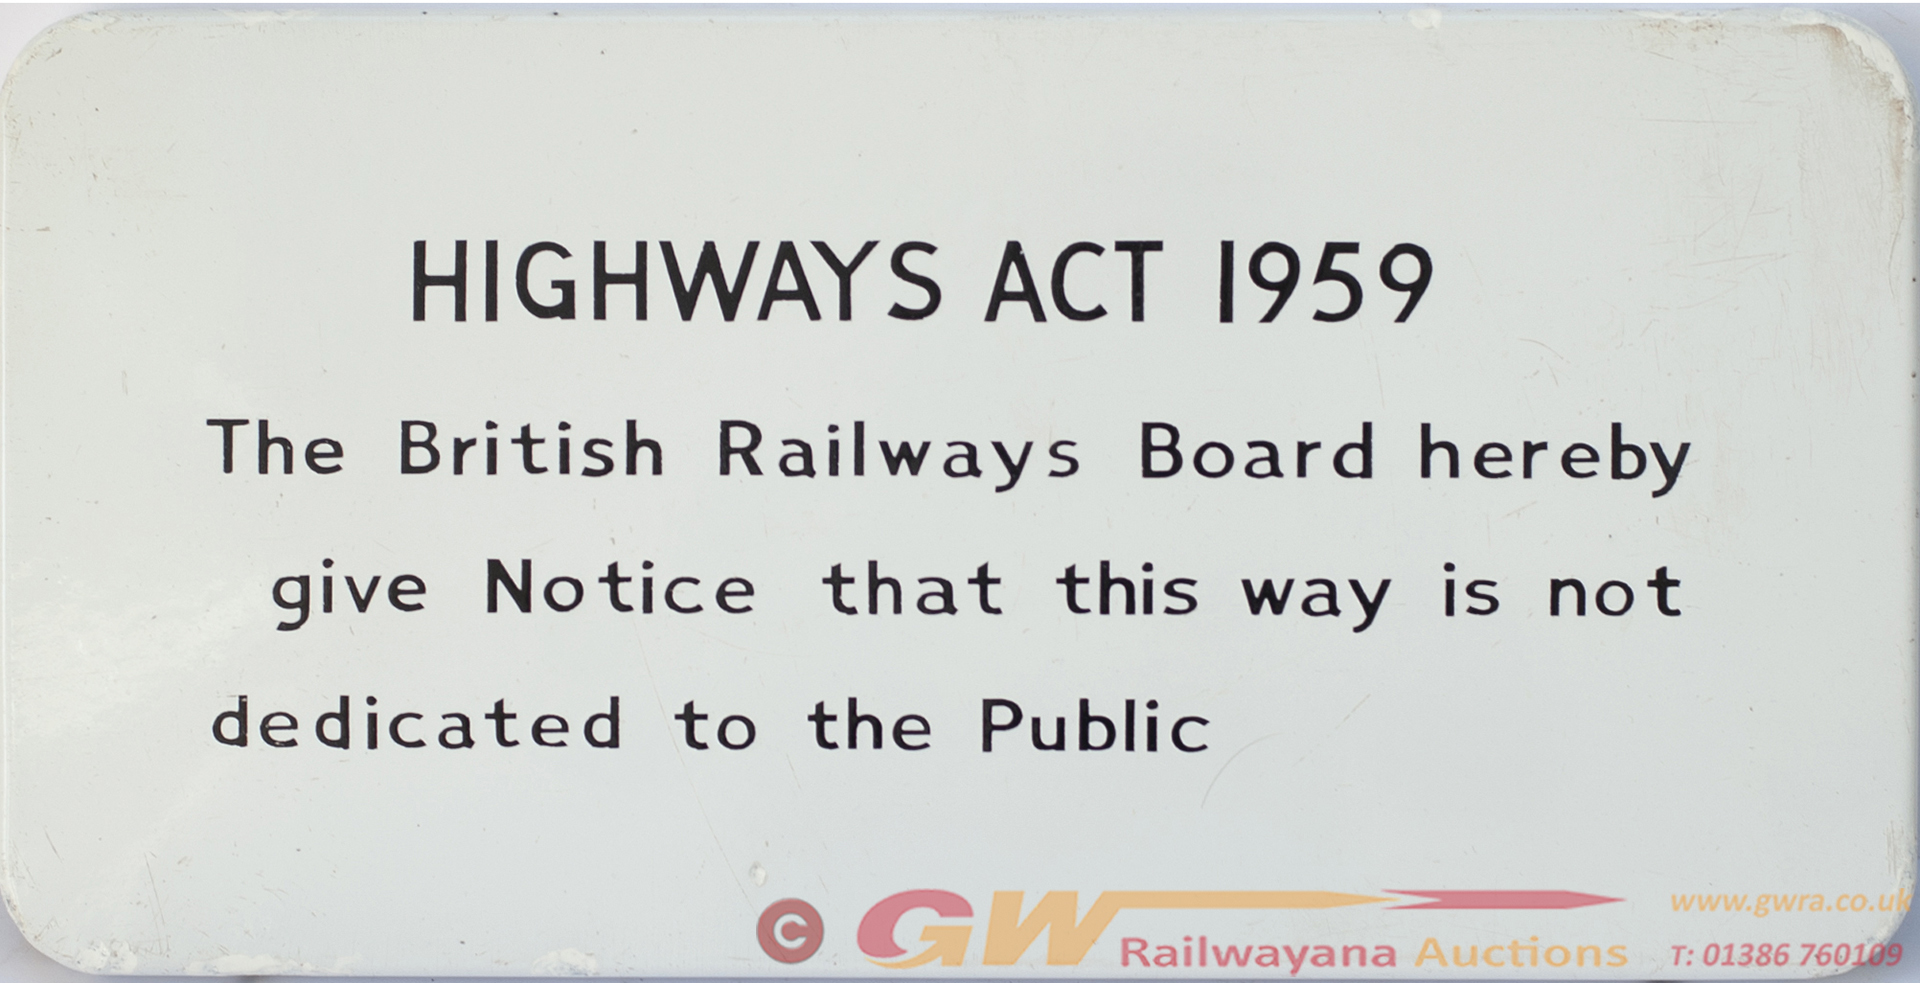 BR FF Enamel Railway Sign HIGHWAYS ACT 1959 THE